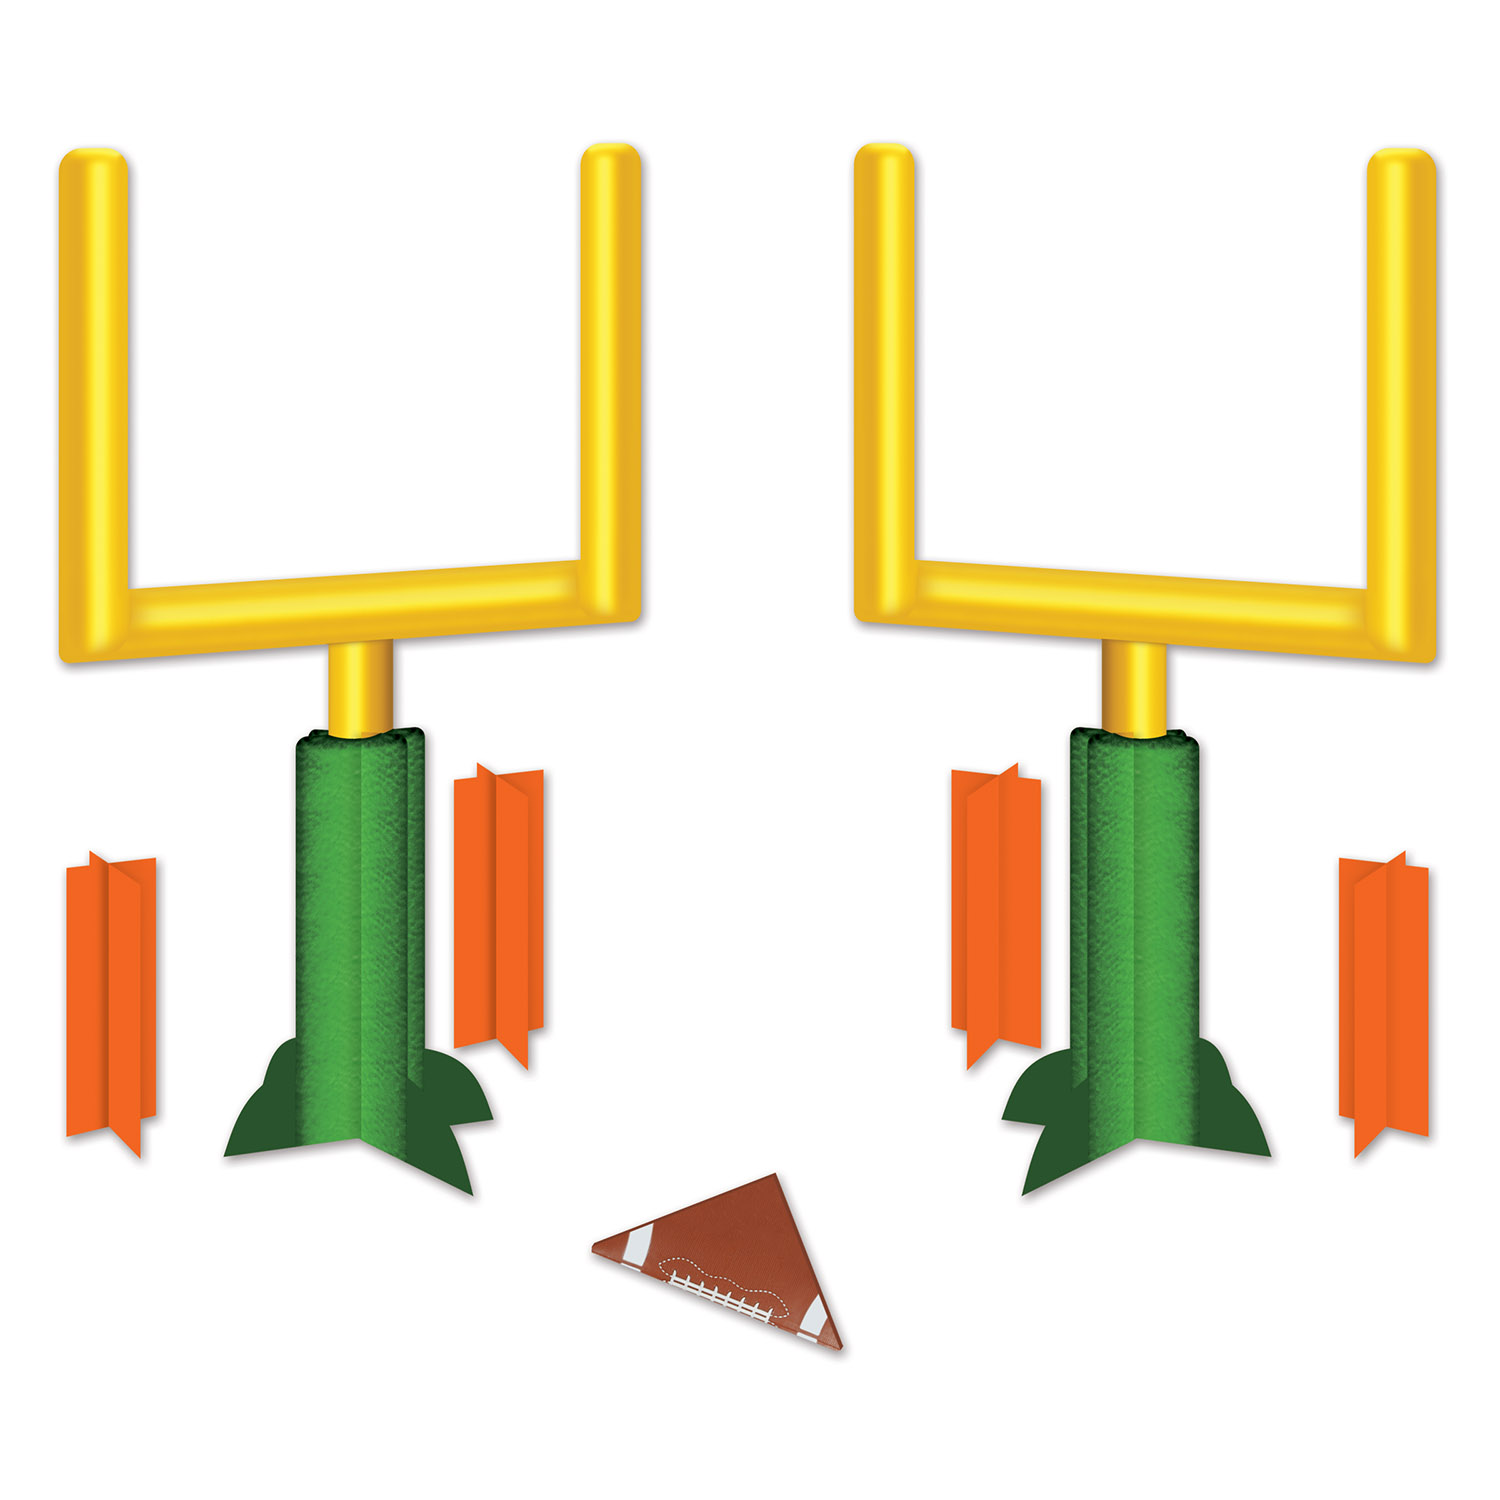 3-D Football Goal Post Centerpieces (Pack of 12) 3-D Football Goal Post, Football Centerpieces, Game Day Decor, Inexpensive centerpieces, Wholesale party supplies, Goal Post